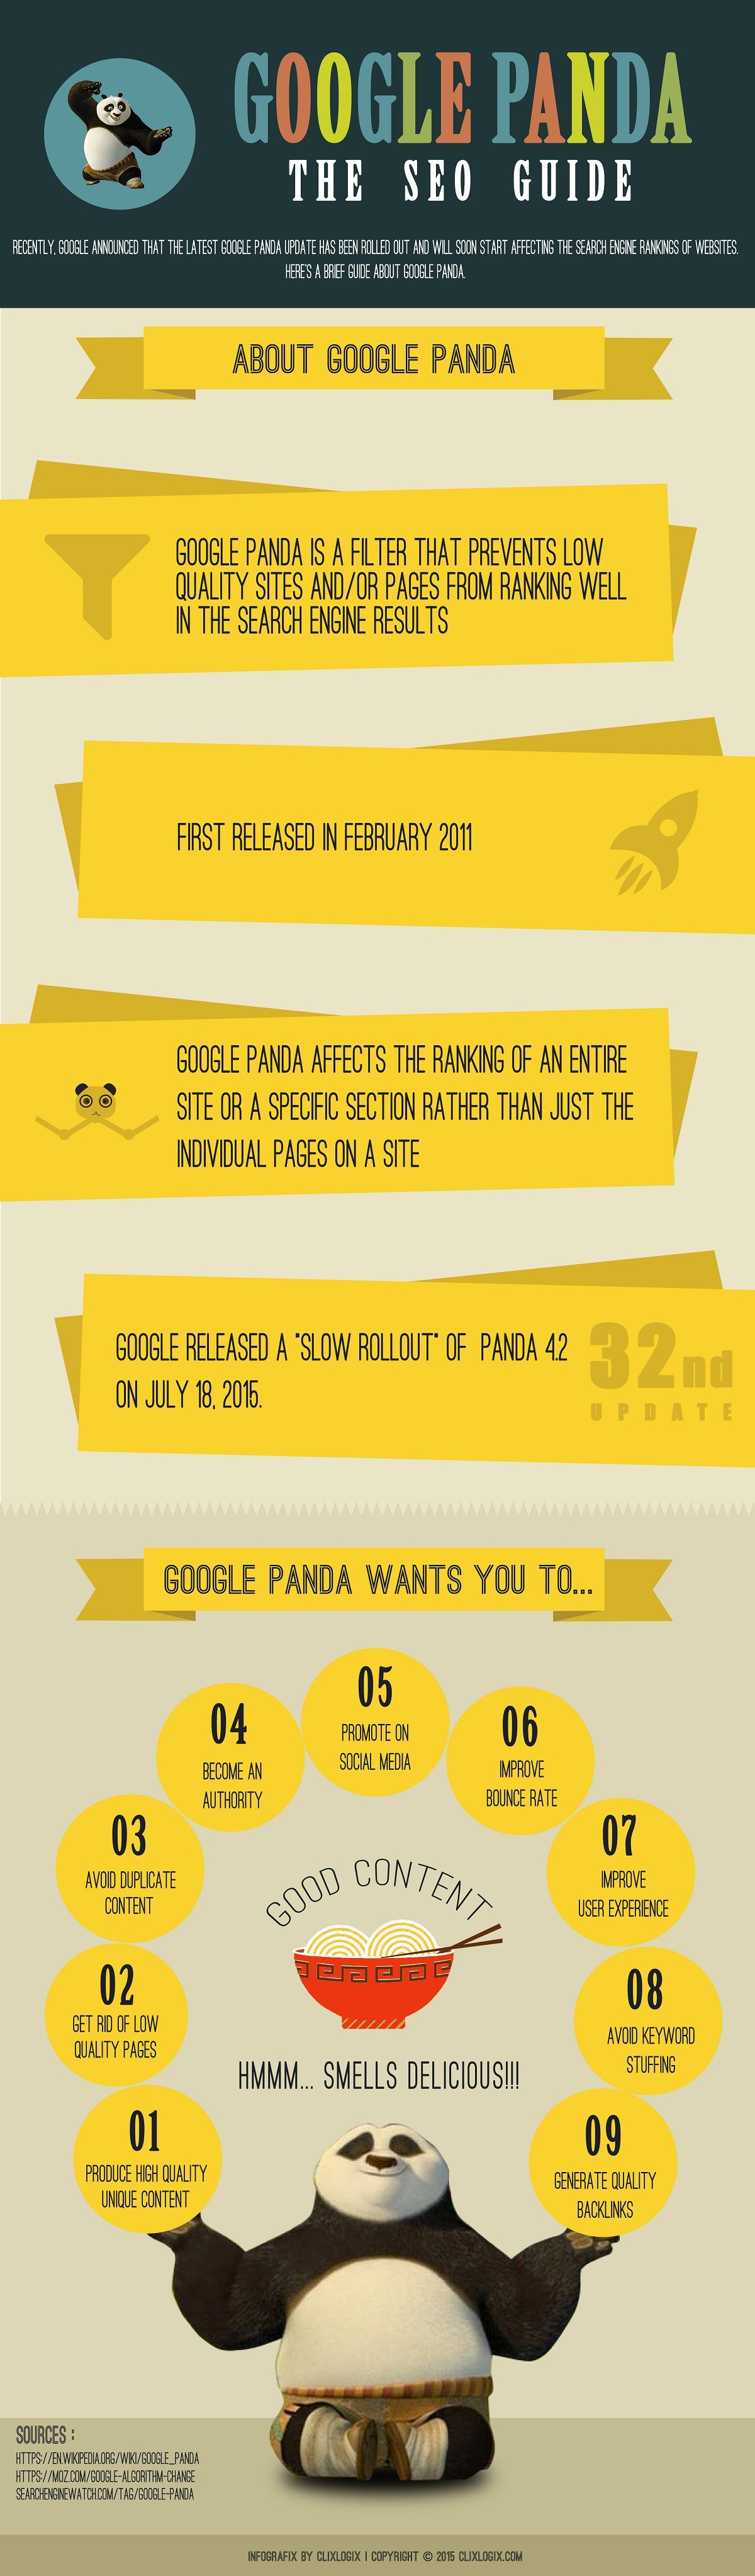 Google Panda: The SEO Guide #infographic